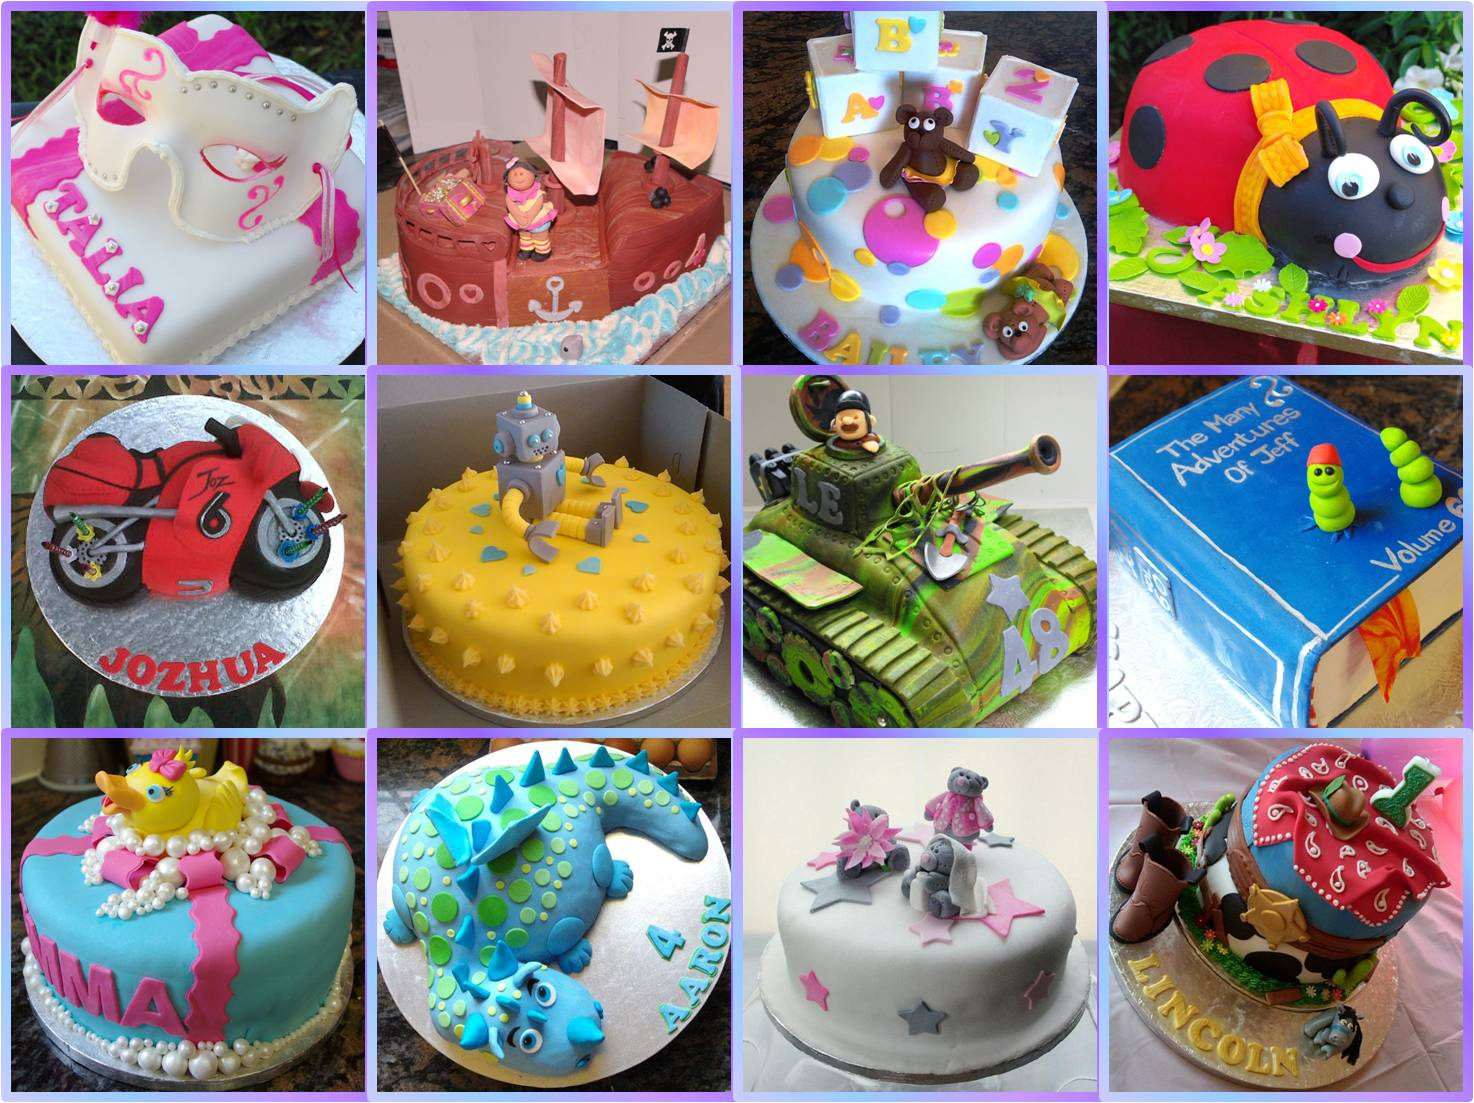 SpecialOfferCakesCollage